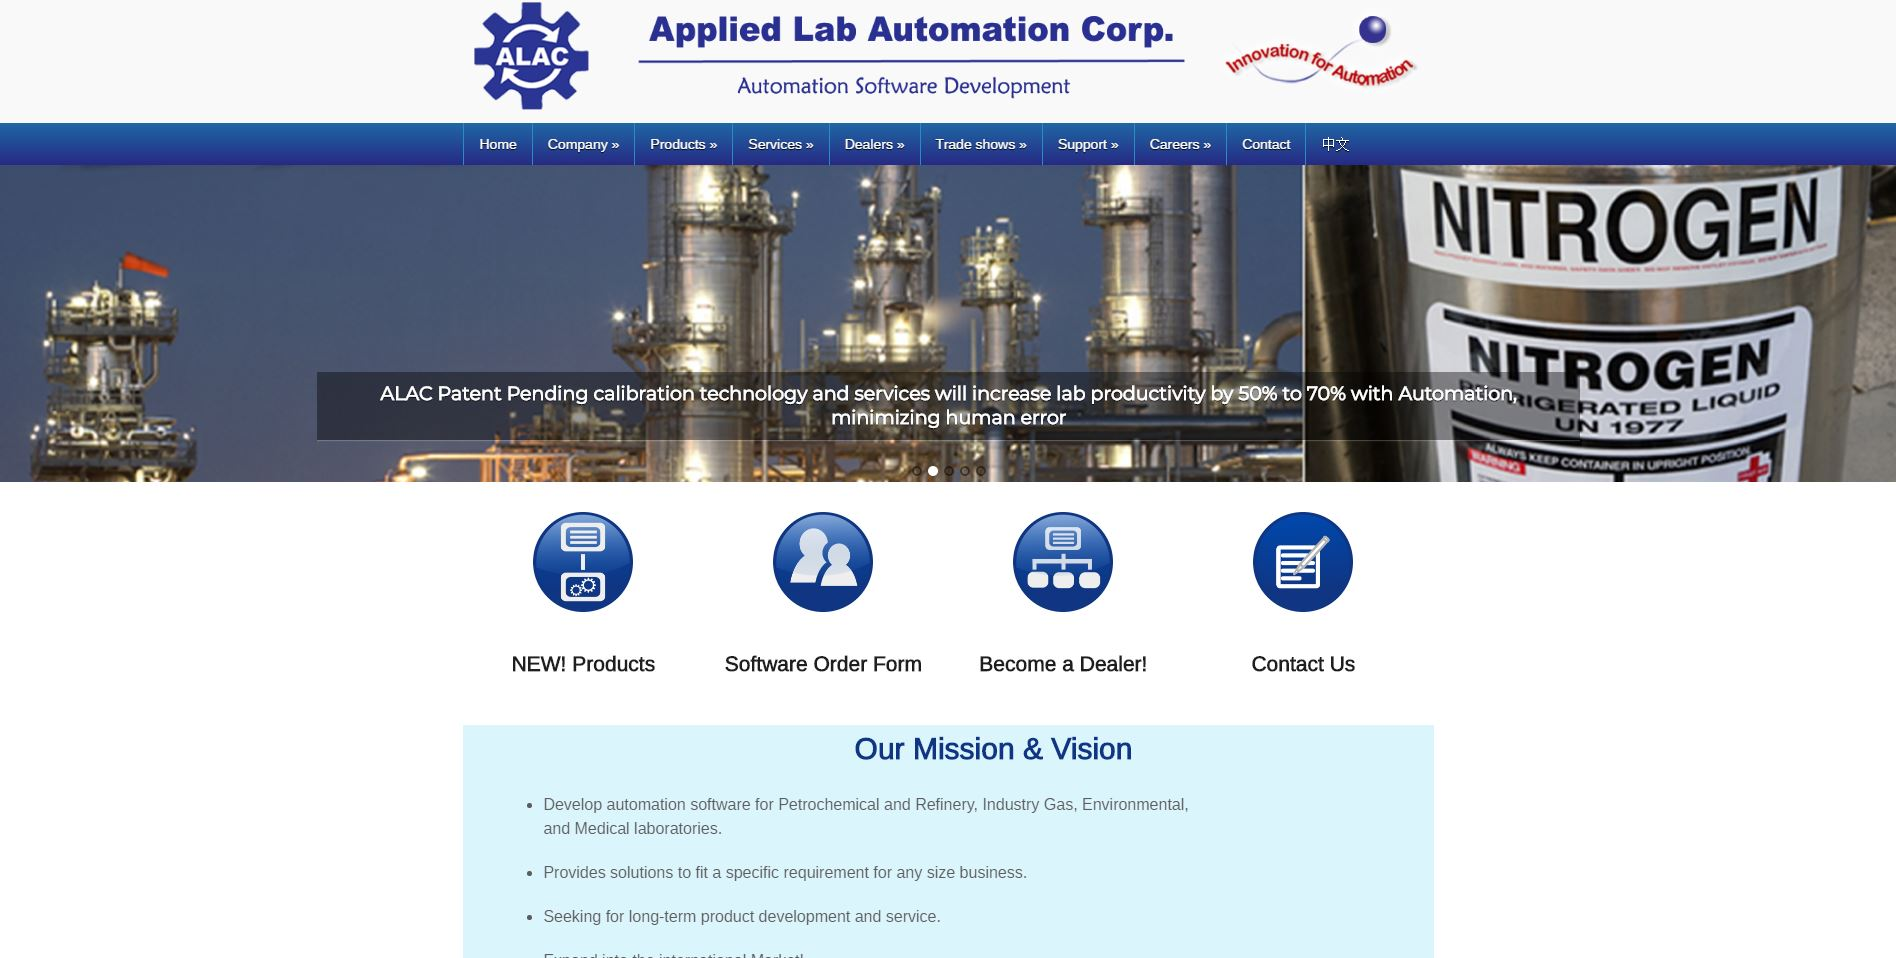 www.appliedlabautomation.com